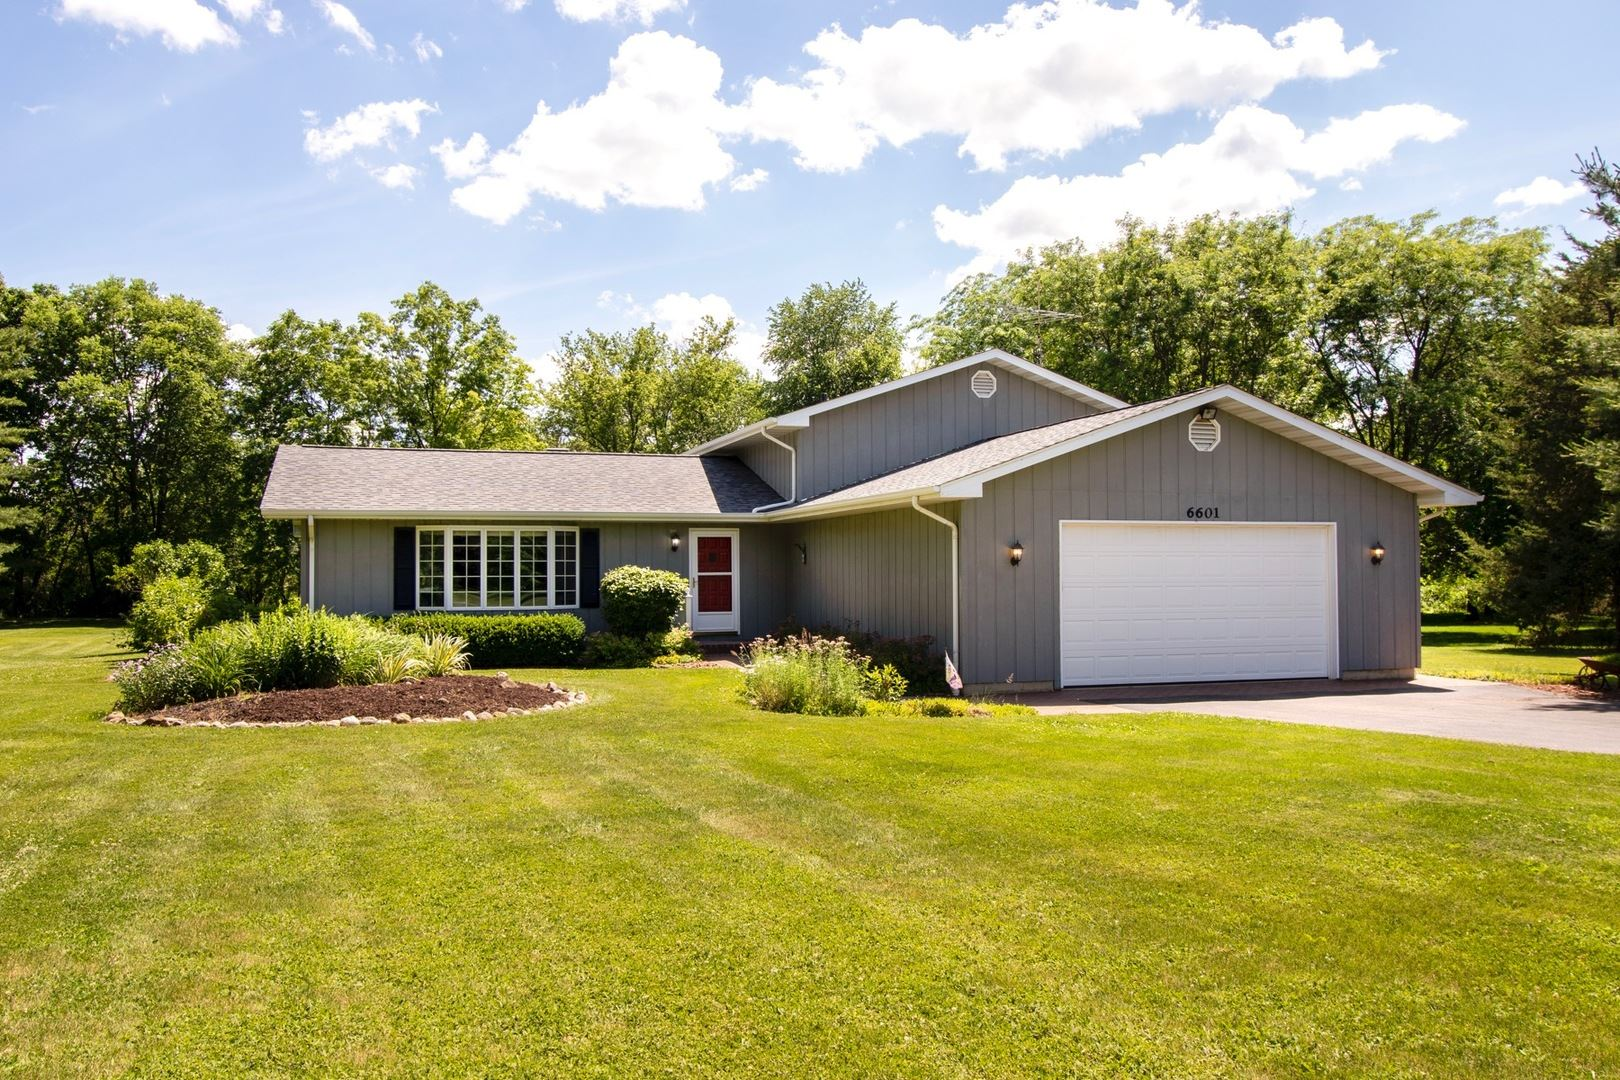 6601 Chickaloon Drive, McHenry, IL 60050 - #: 10761658